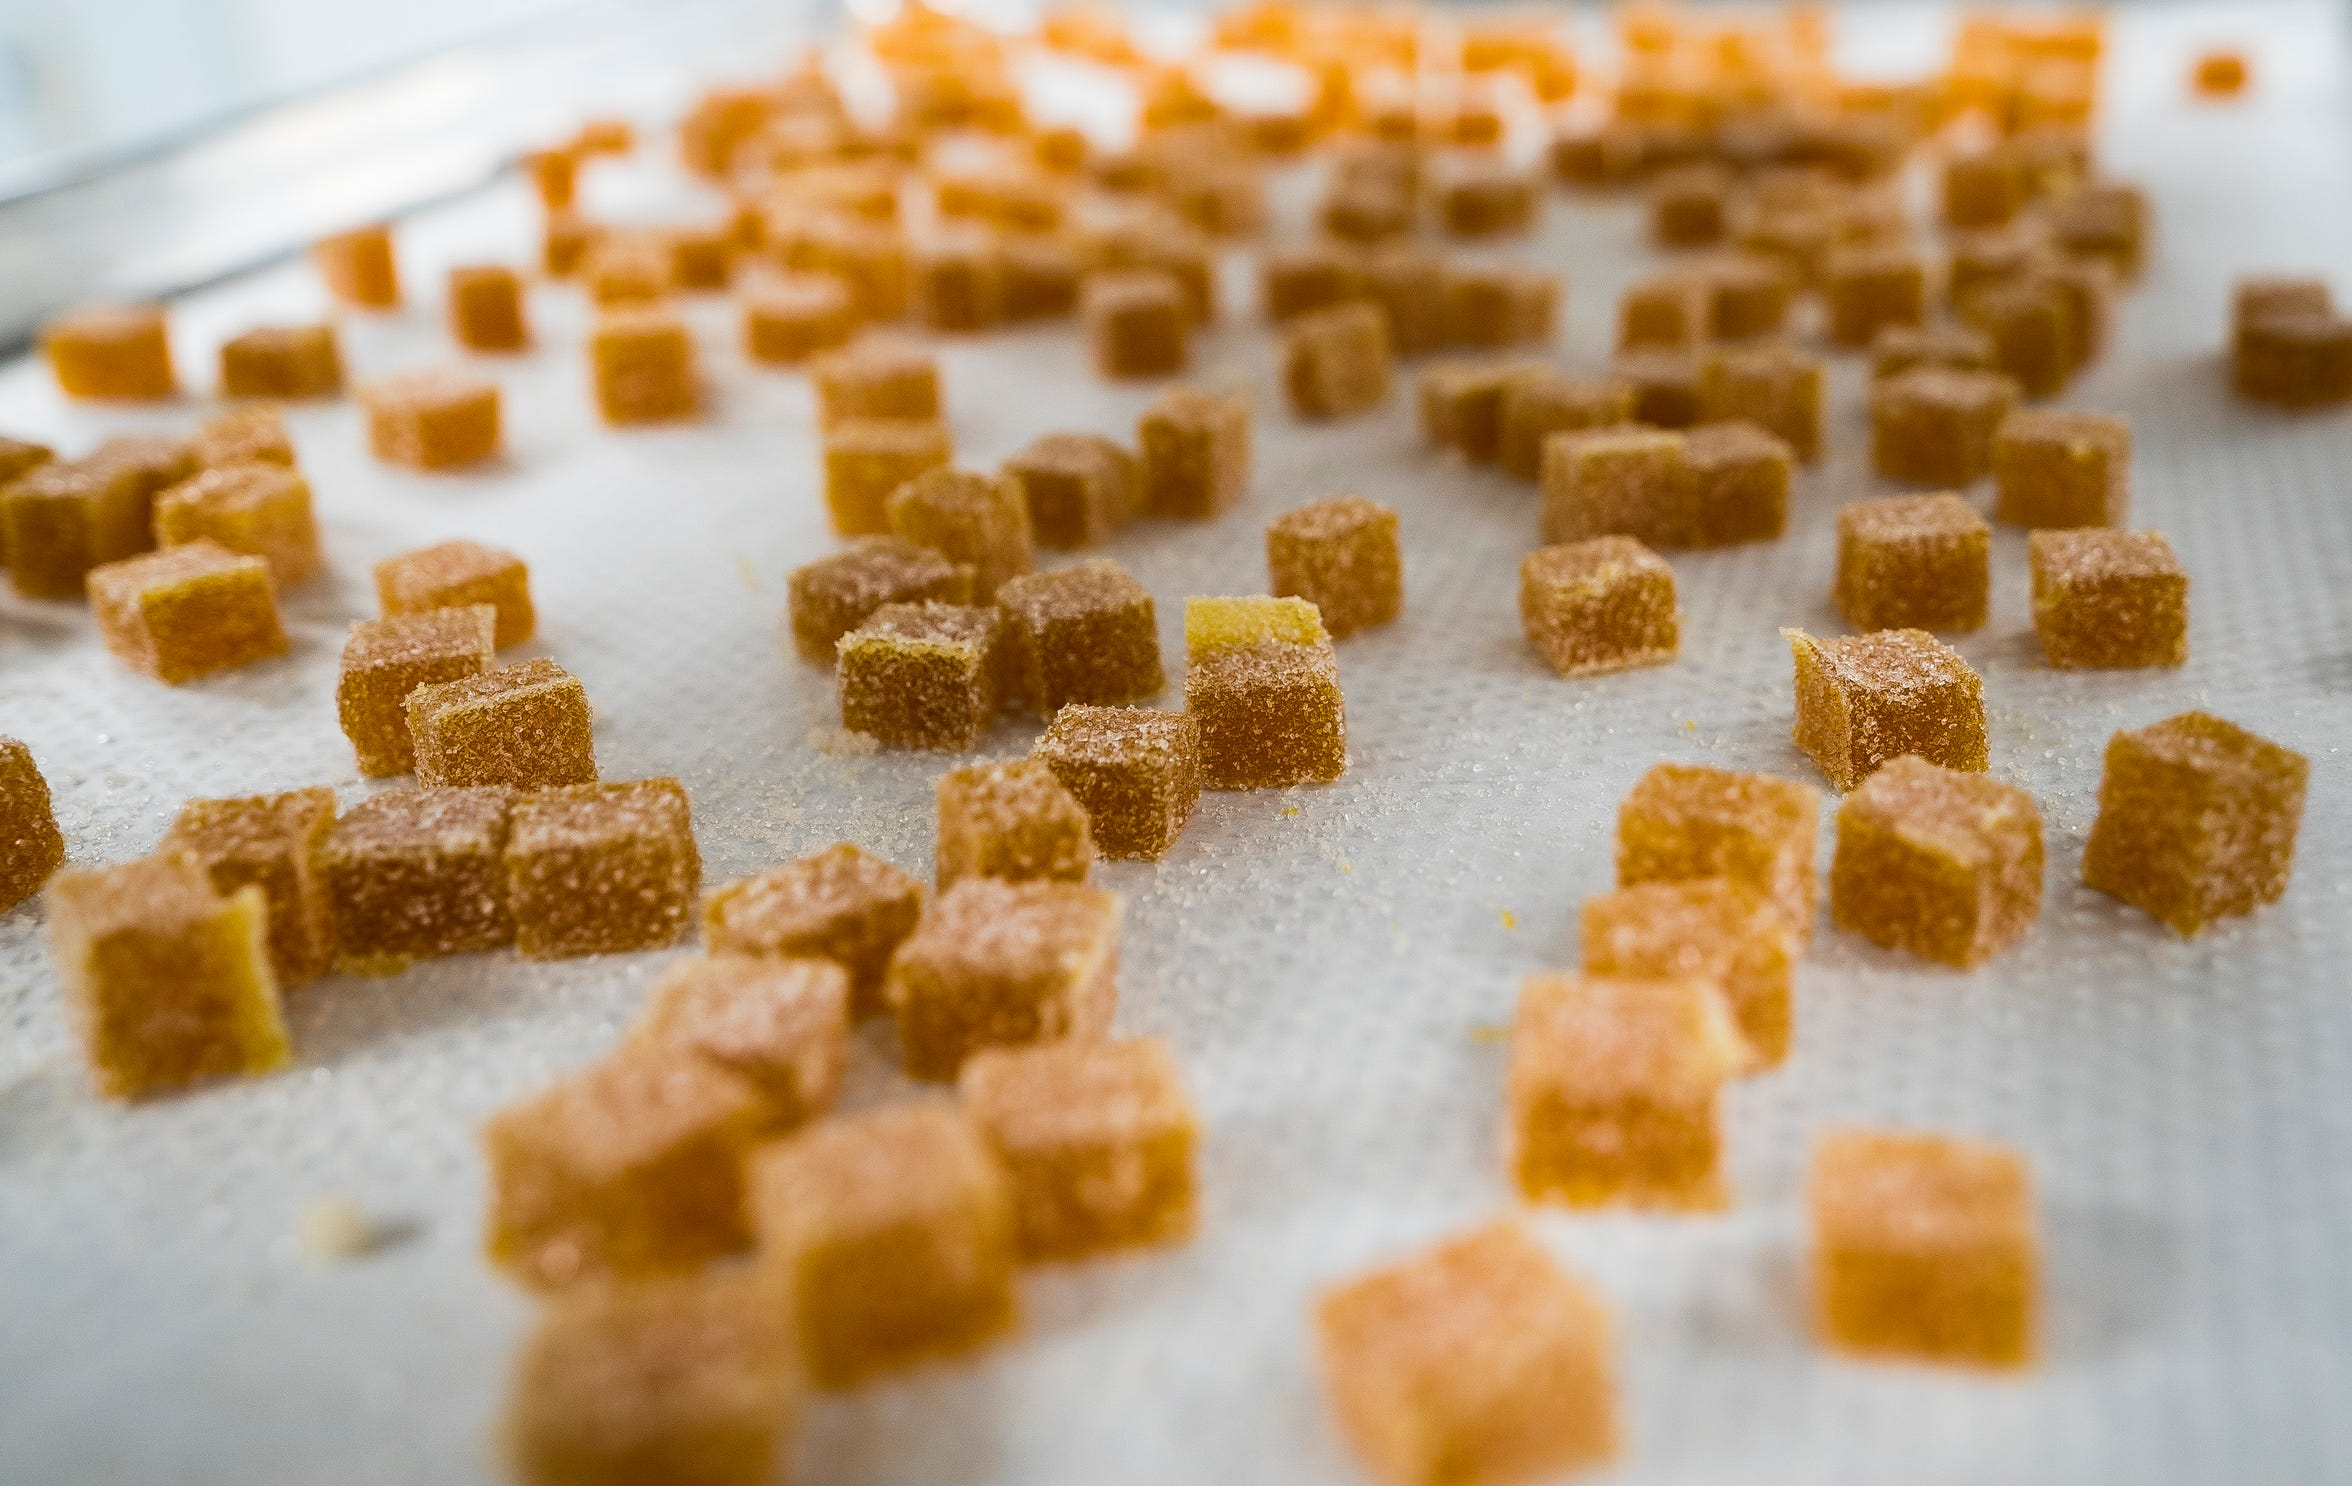 CVD, Inc. in Milton, Vt., produced both THC and CBD edibles for medical use in gummies, baked goods and confections.